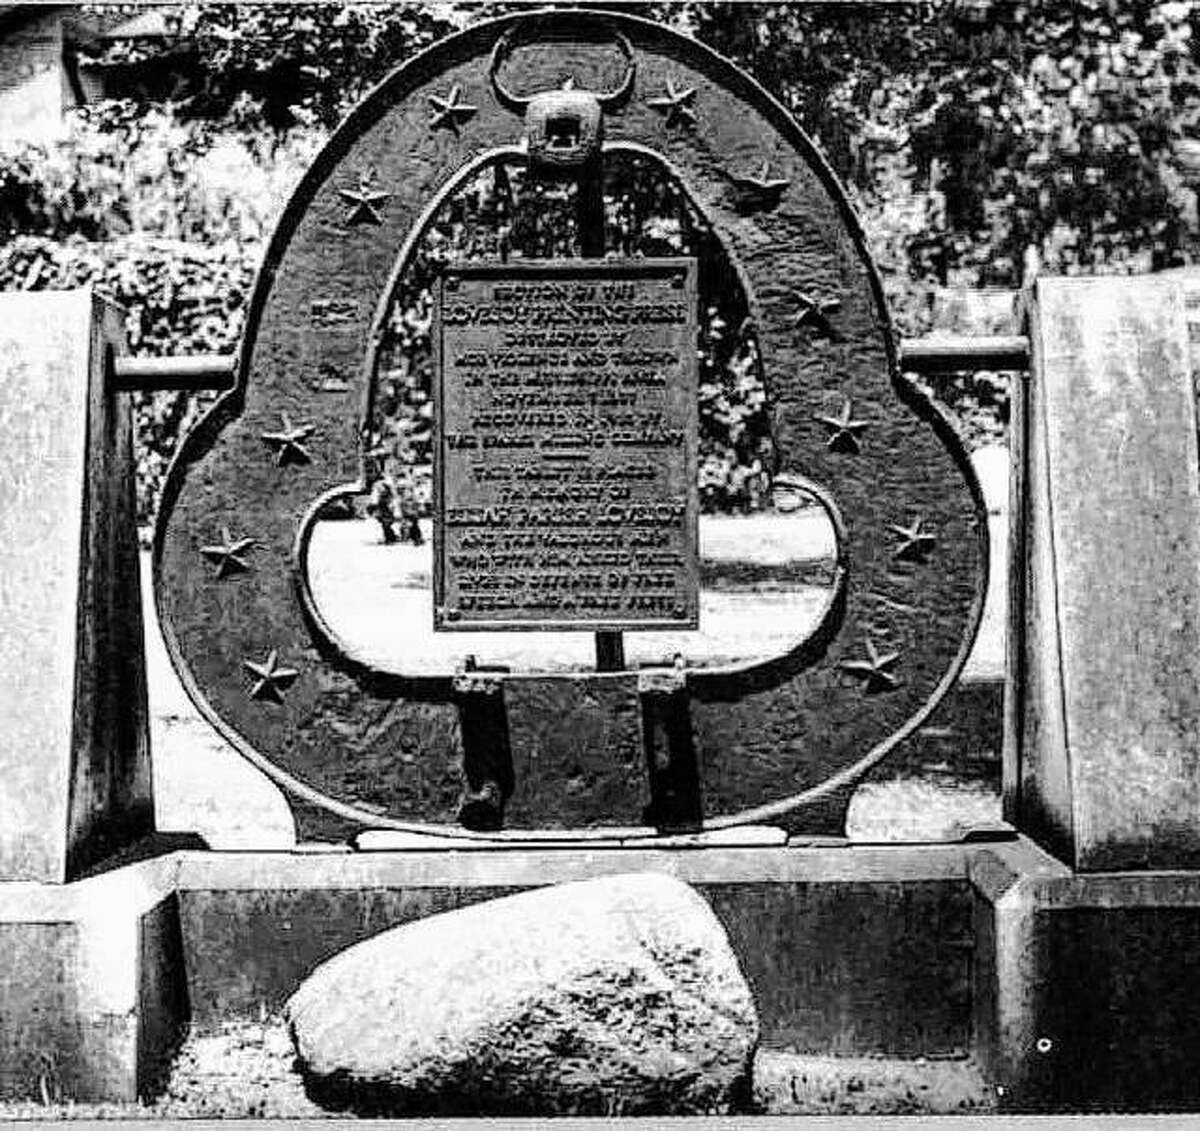 """The only recovered piece of Lovejoy's many presses, this """"yoke"""" was found at the bottom of the Mississippi River in 1915 when the Sparks Milling Co. was dredging the river to deepen the channel. The piece was retrieved, and a commemorative plaque was added. It was displayed outside the Sparks Milling office at State and William Streets, until 1938, when it was presented to the Alton Telegraph, where it remains on display."""